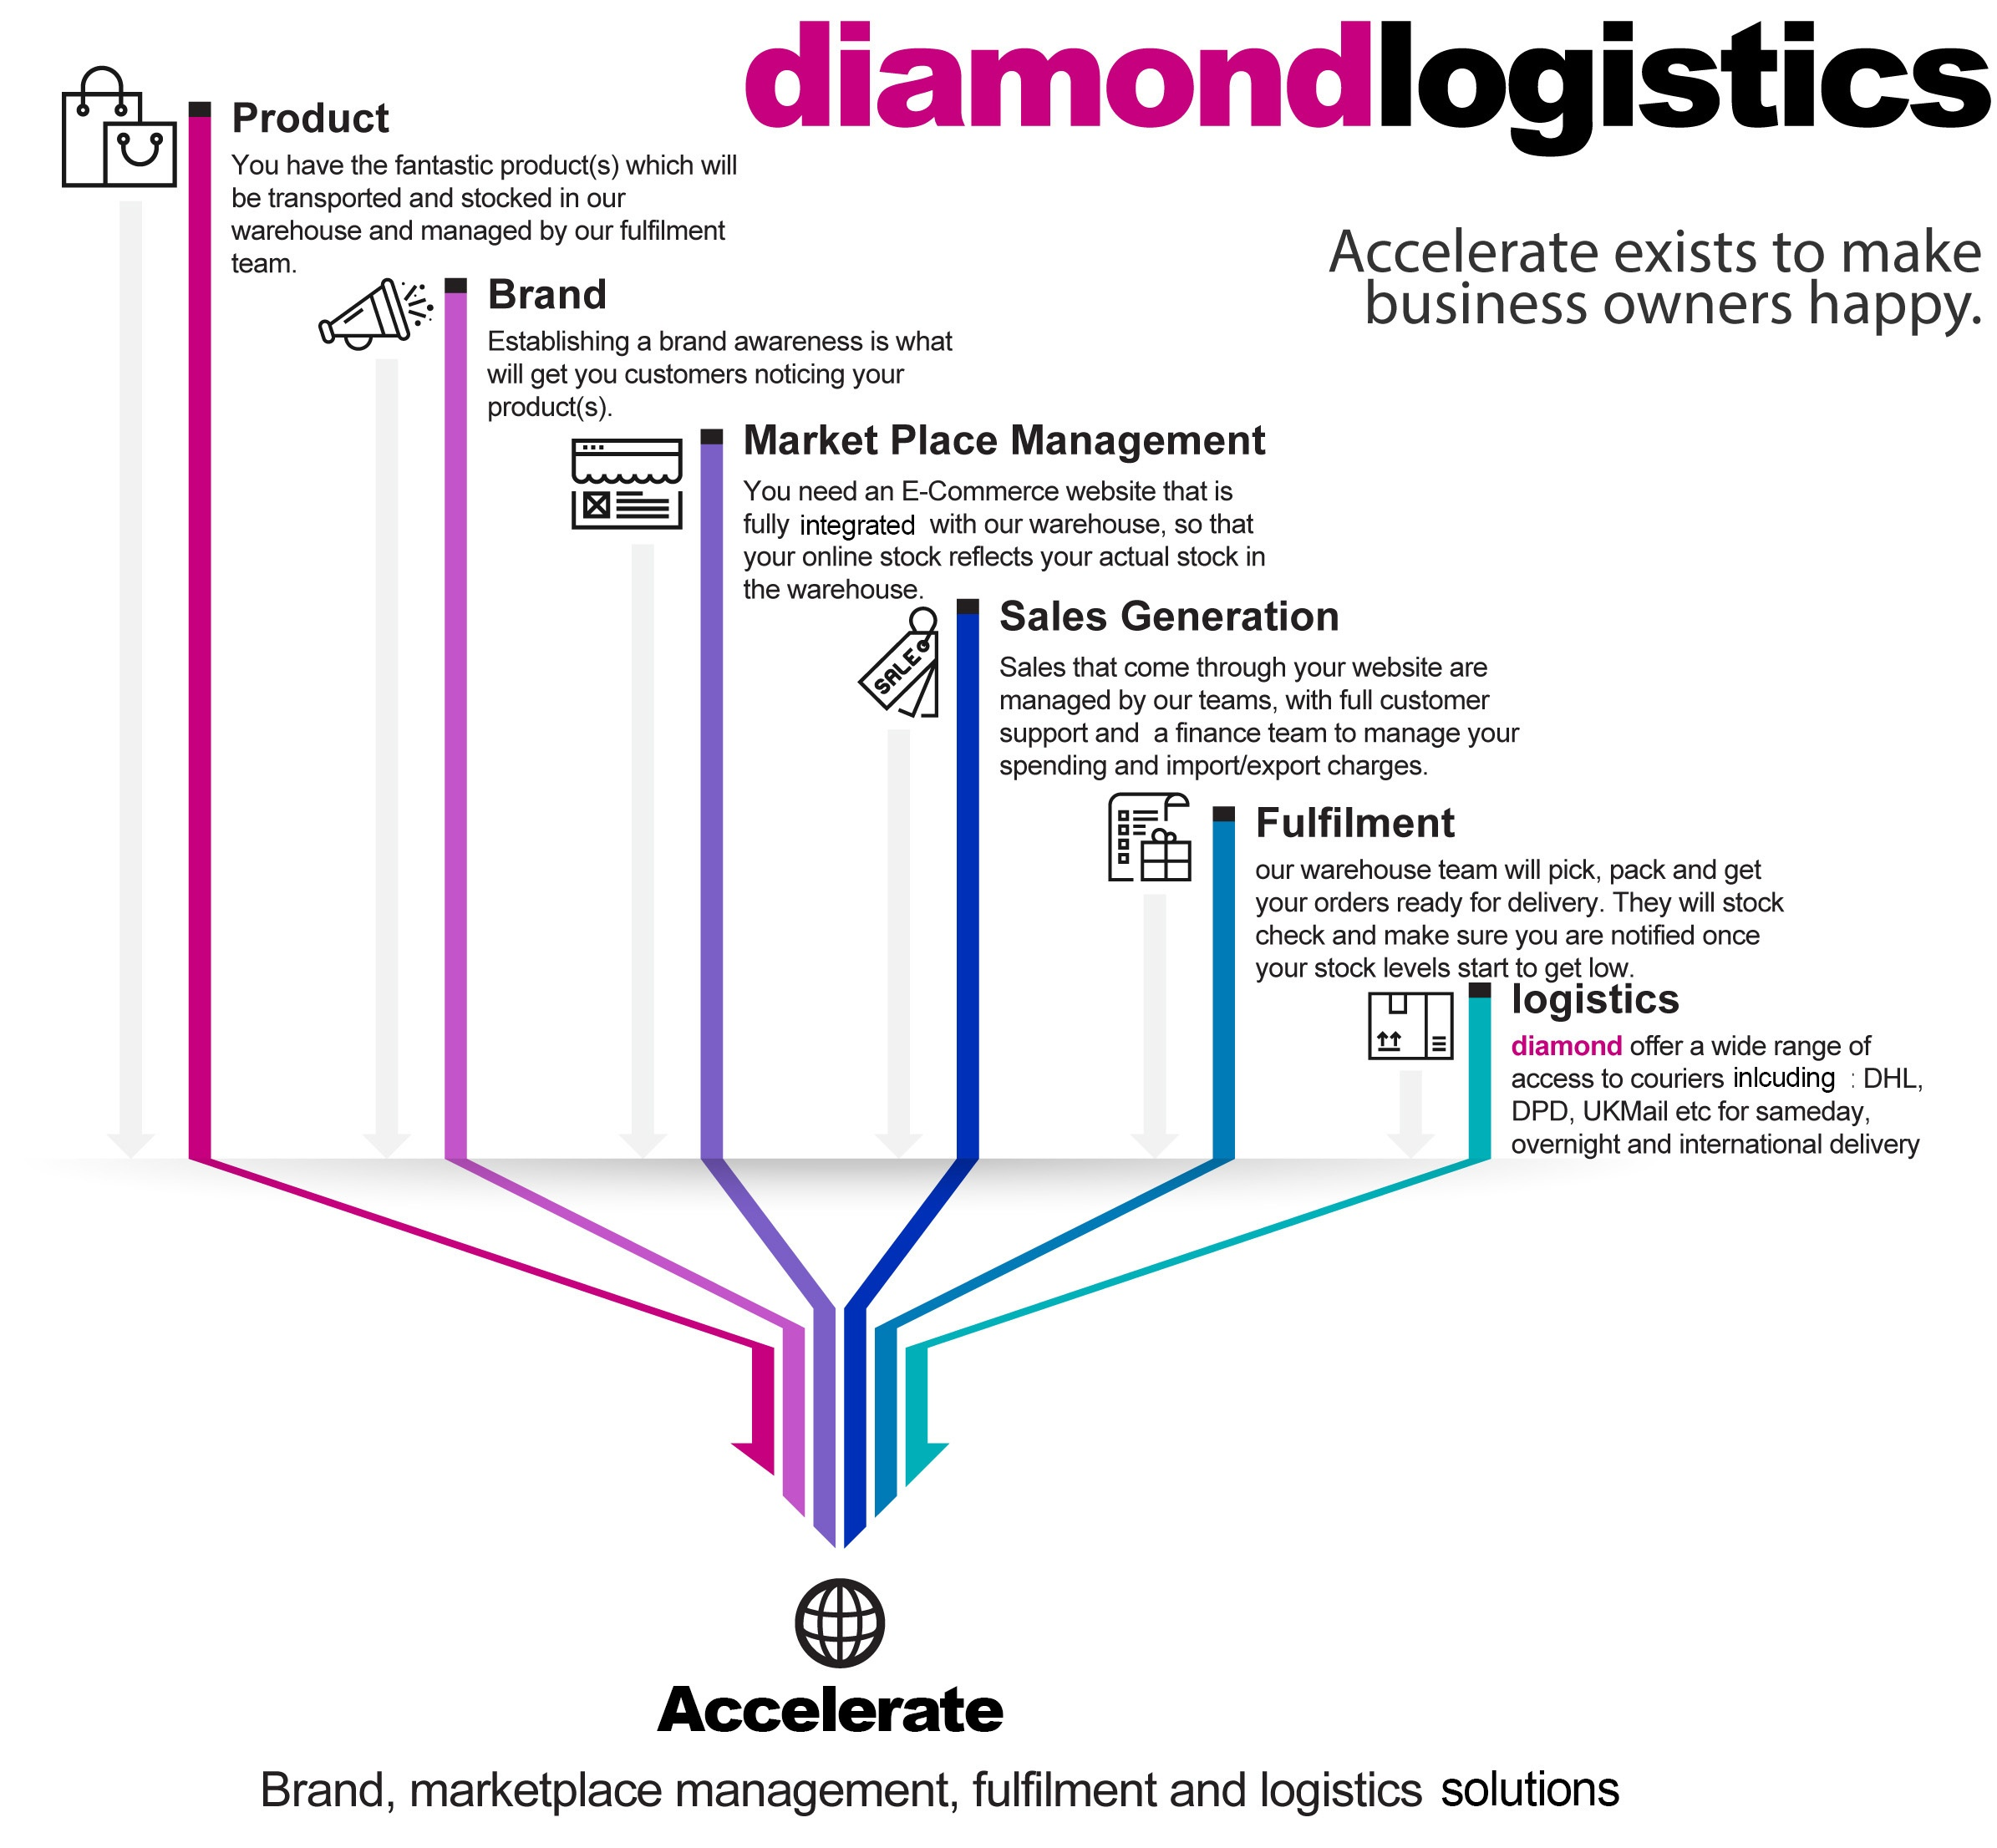 brand awareness, marketplace management, sales generation, fulfilment, logistics and your products all under one roof